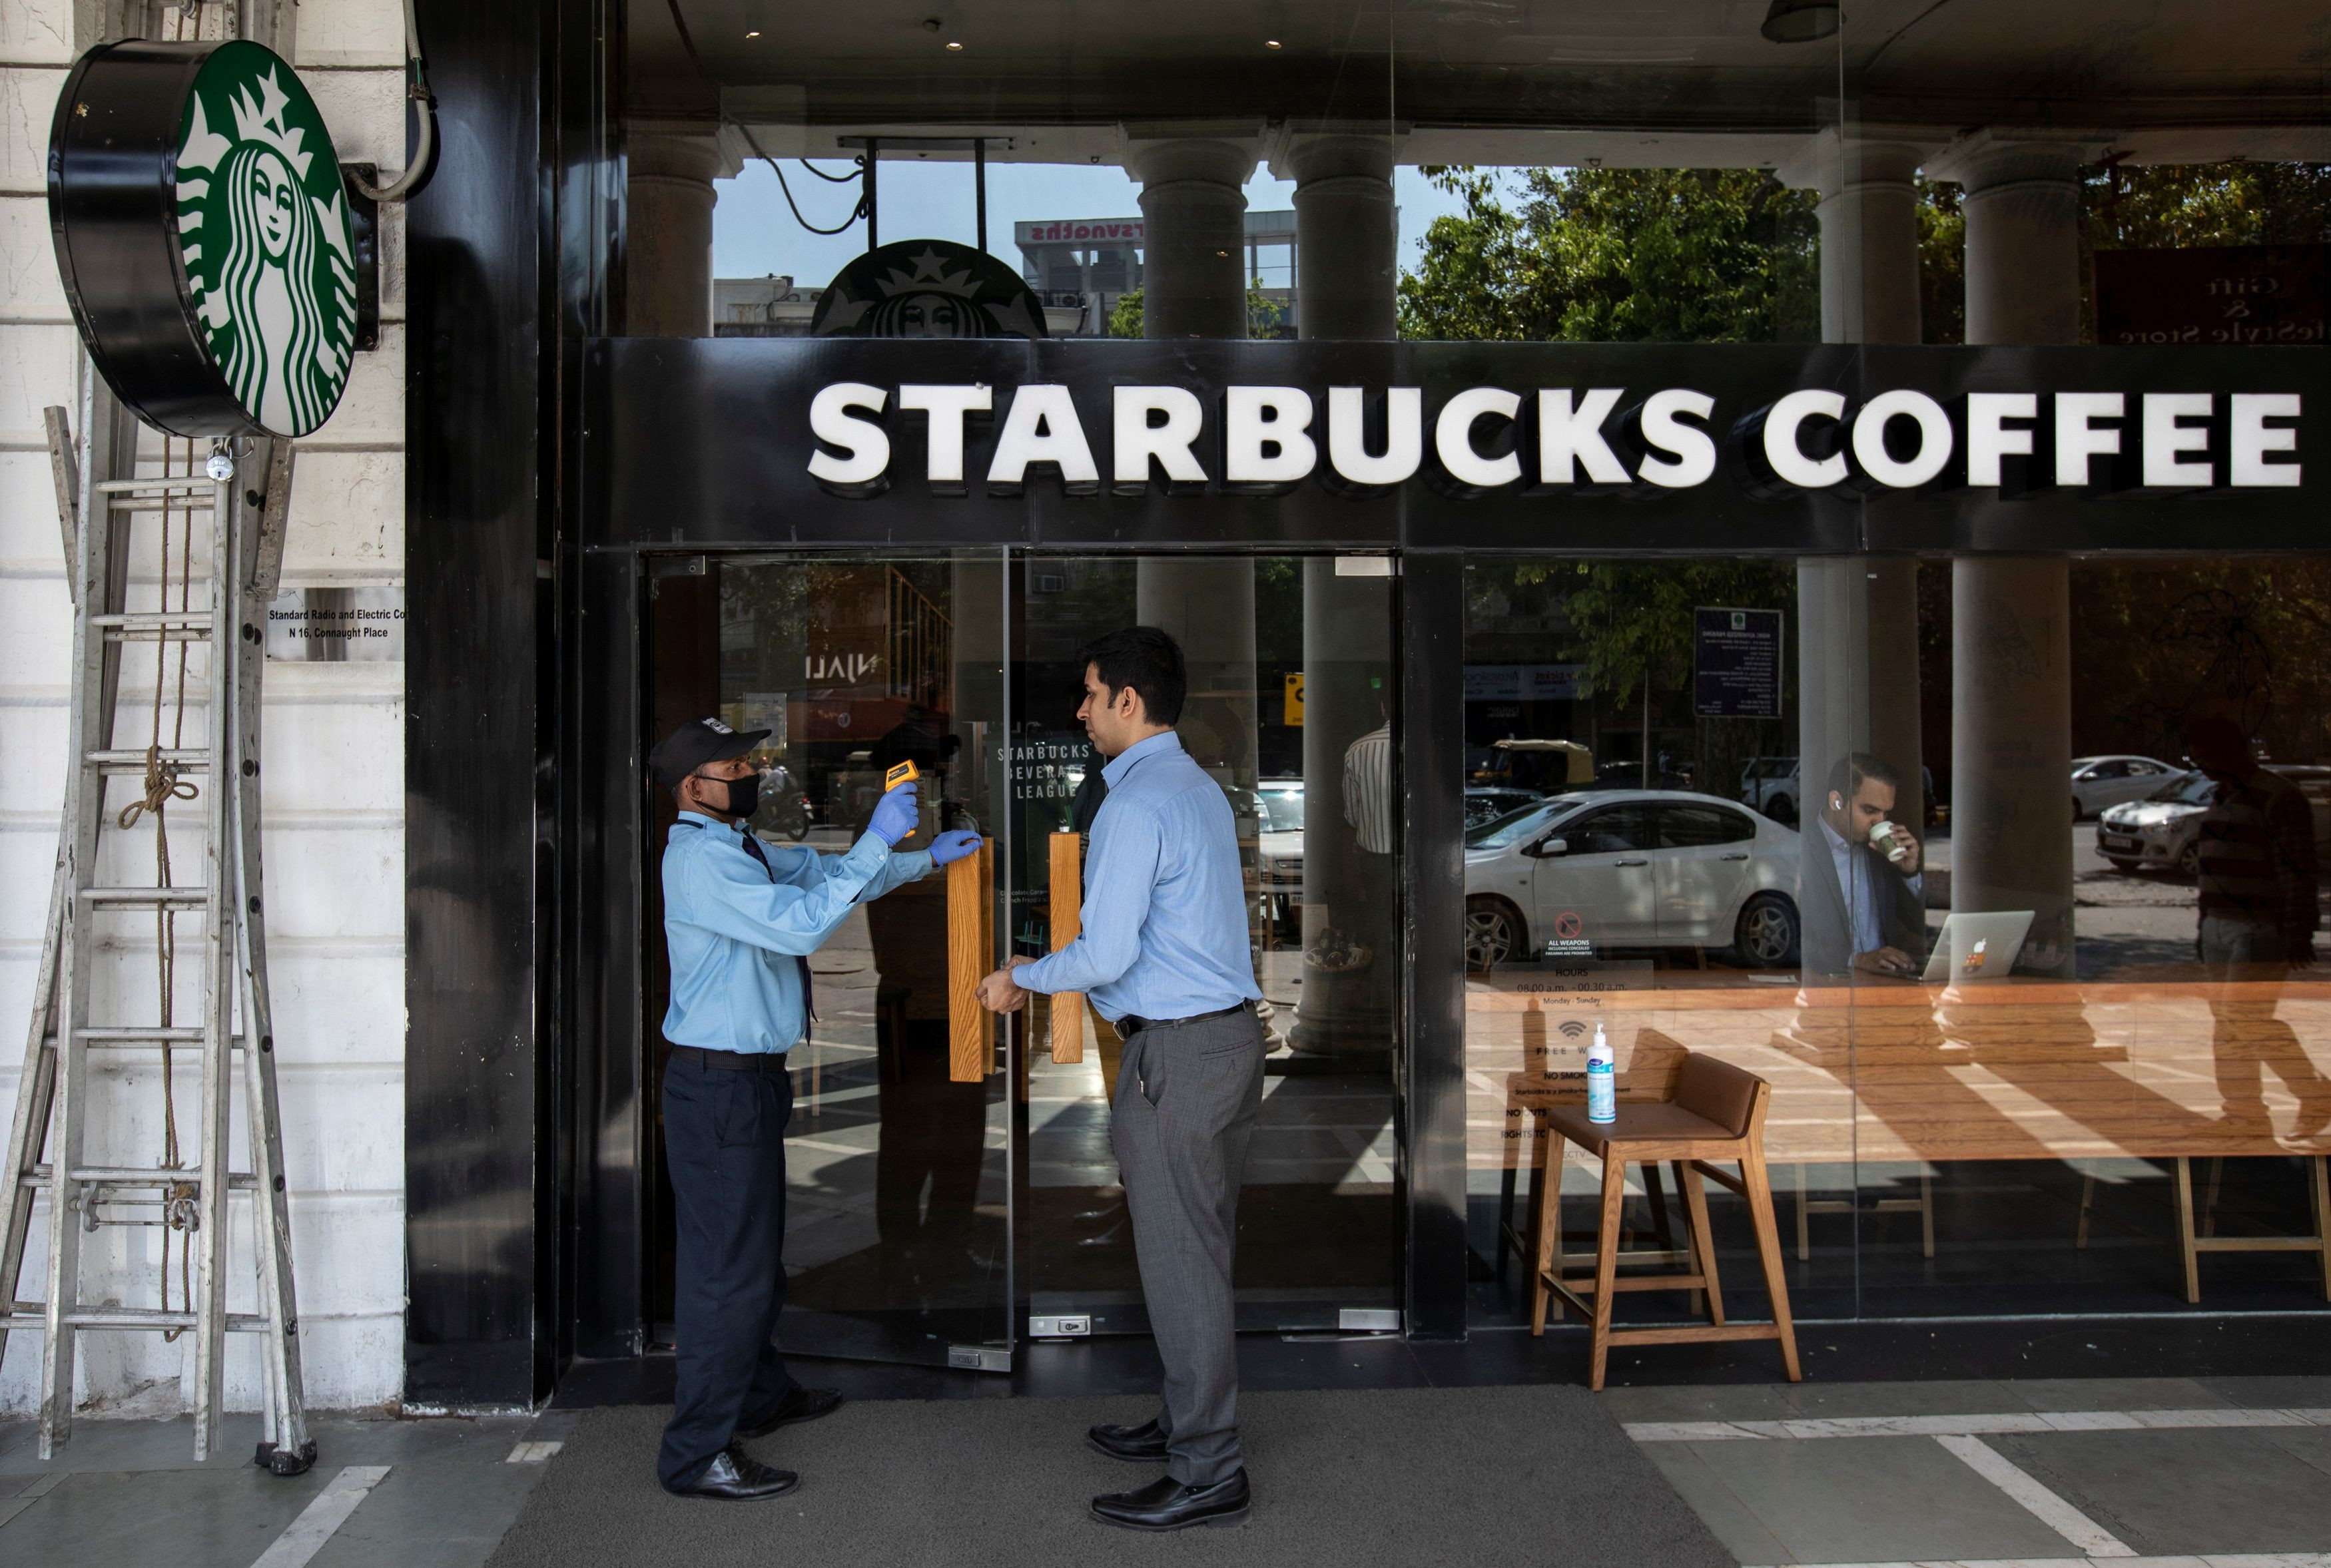 A private security guard checks the body temperature of a customer outside a Starbucks coffee shop, as a precaution against the spread of coronavirus, in New Delhi, India, March 17, 2020. REUTERS/Danish Siddiqui - RC2JLF9GMI5O